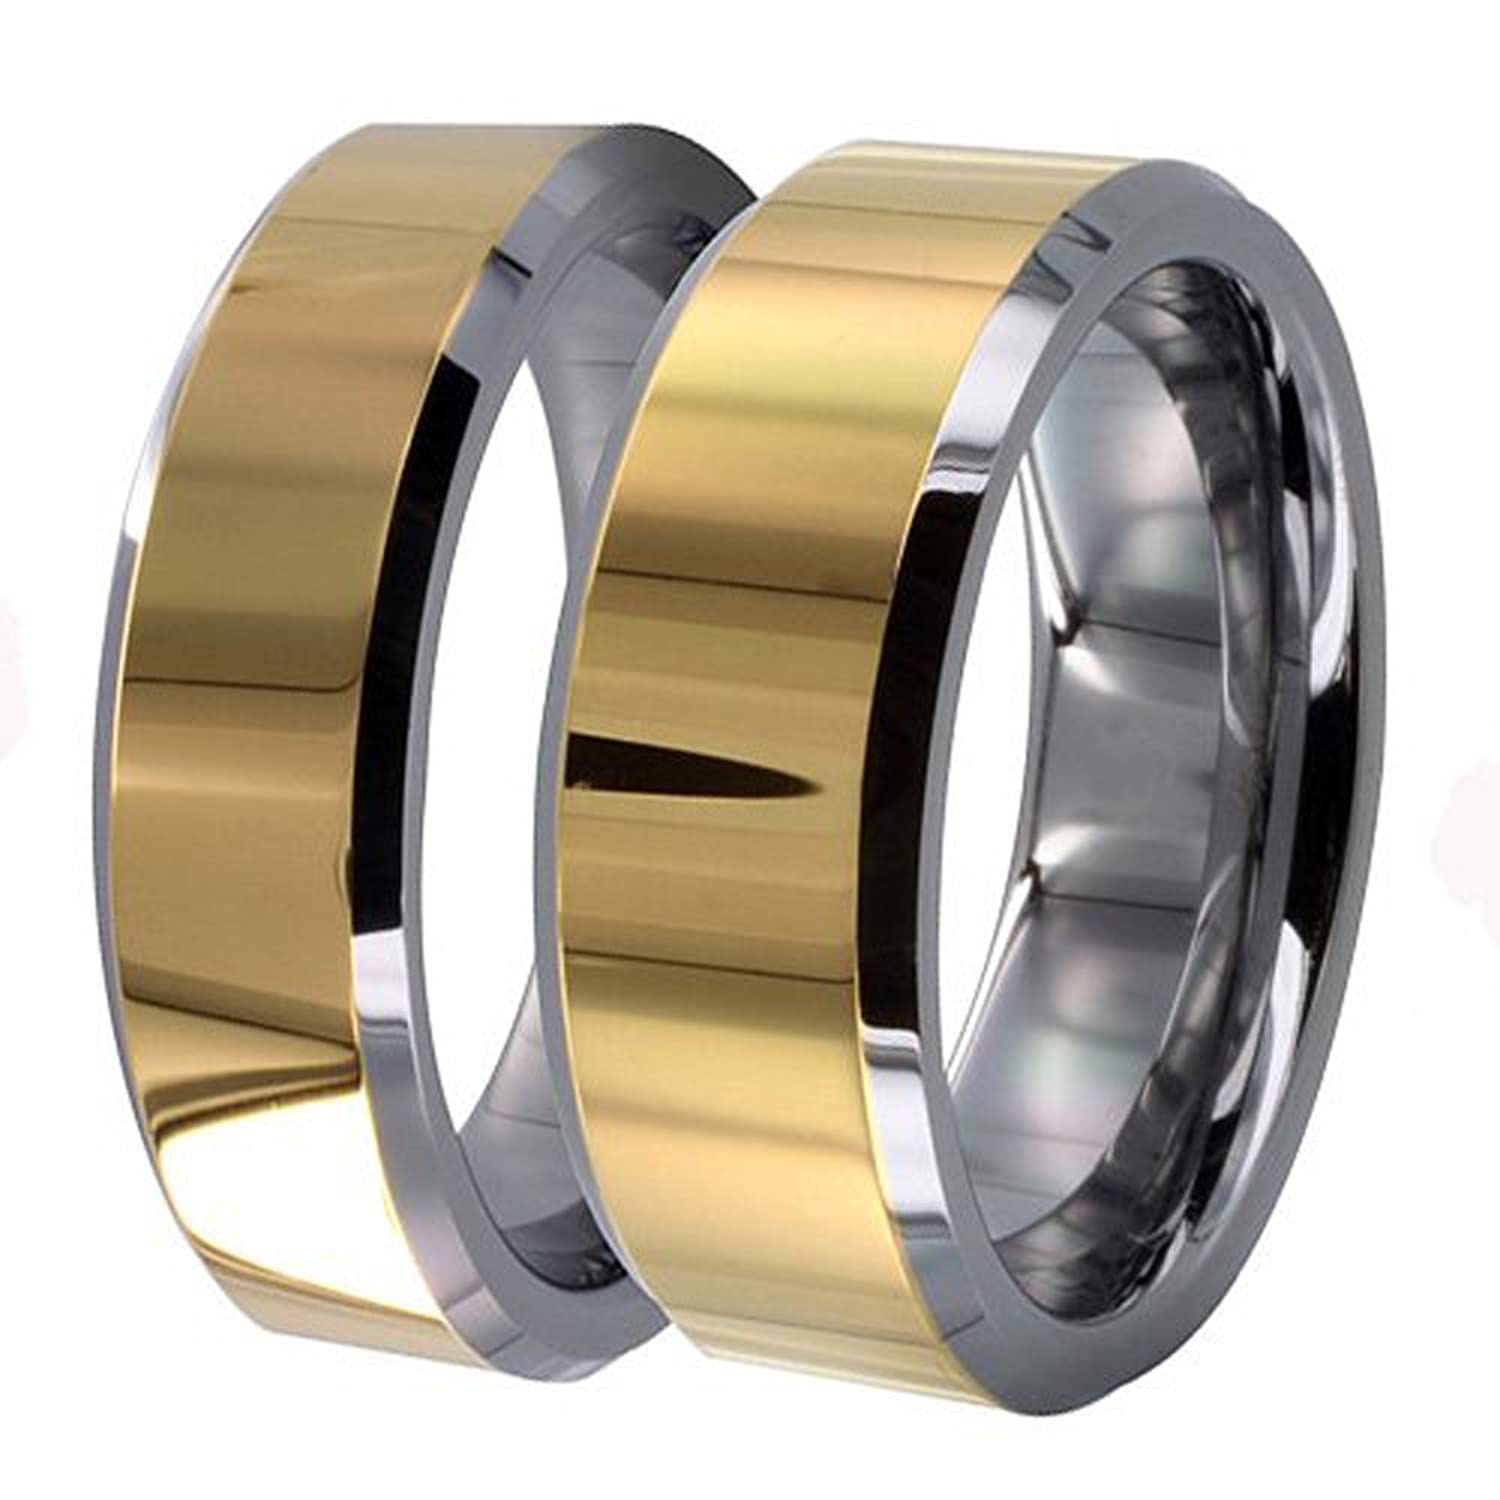 His & Her's 8MM/6MM Two Tone Gold Shiny Center & Beveled Edges Tungsten Carbide Wedding Band Ring Set